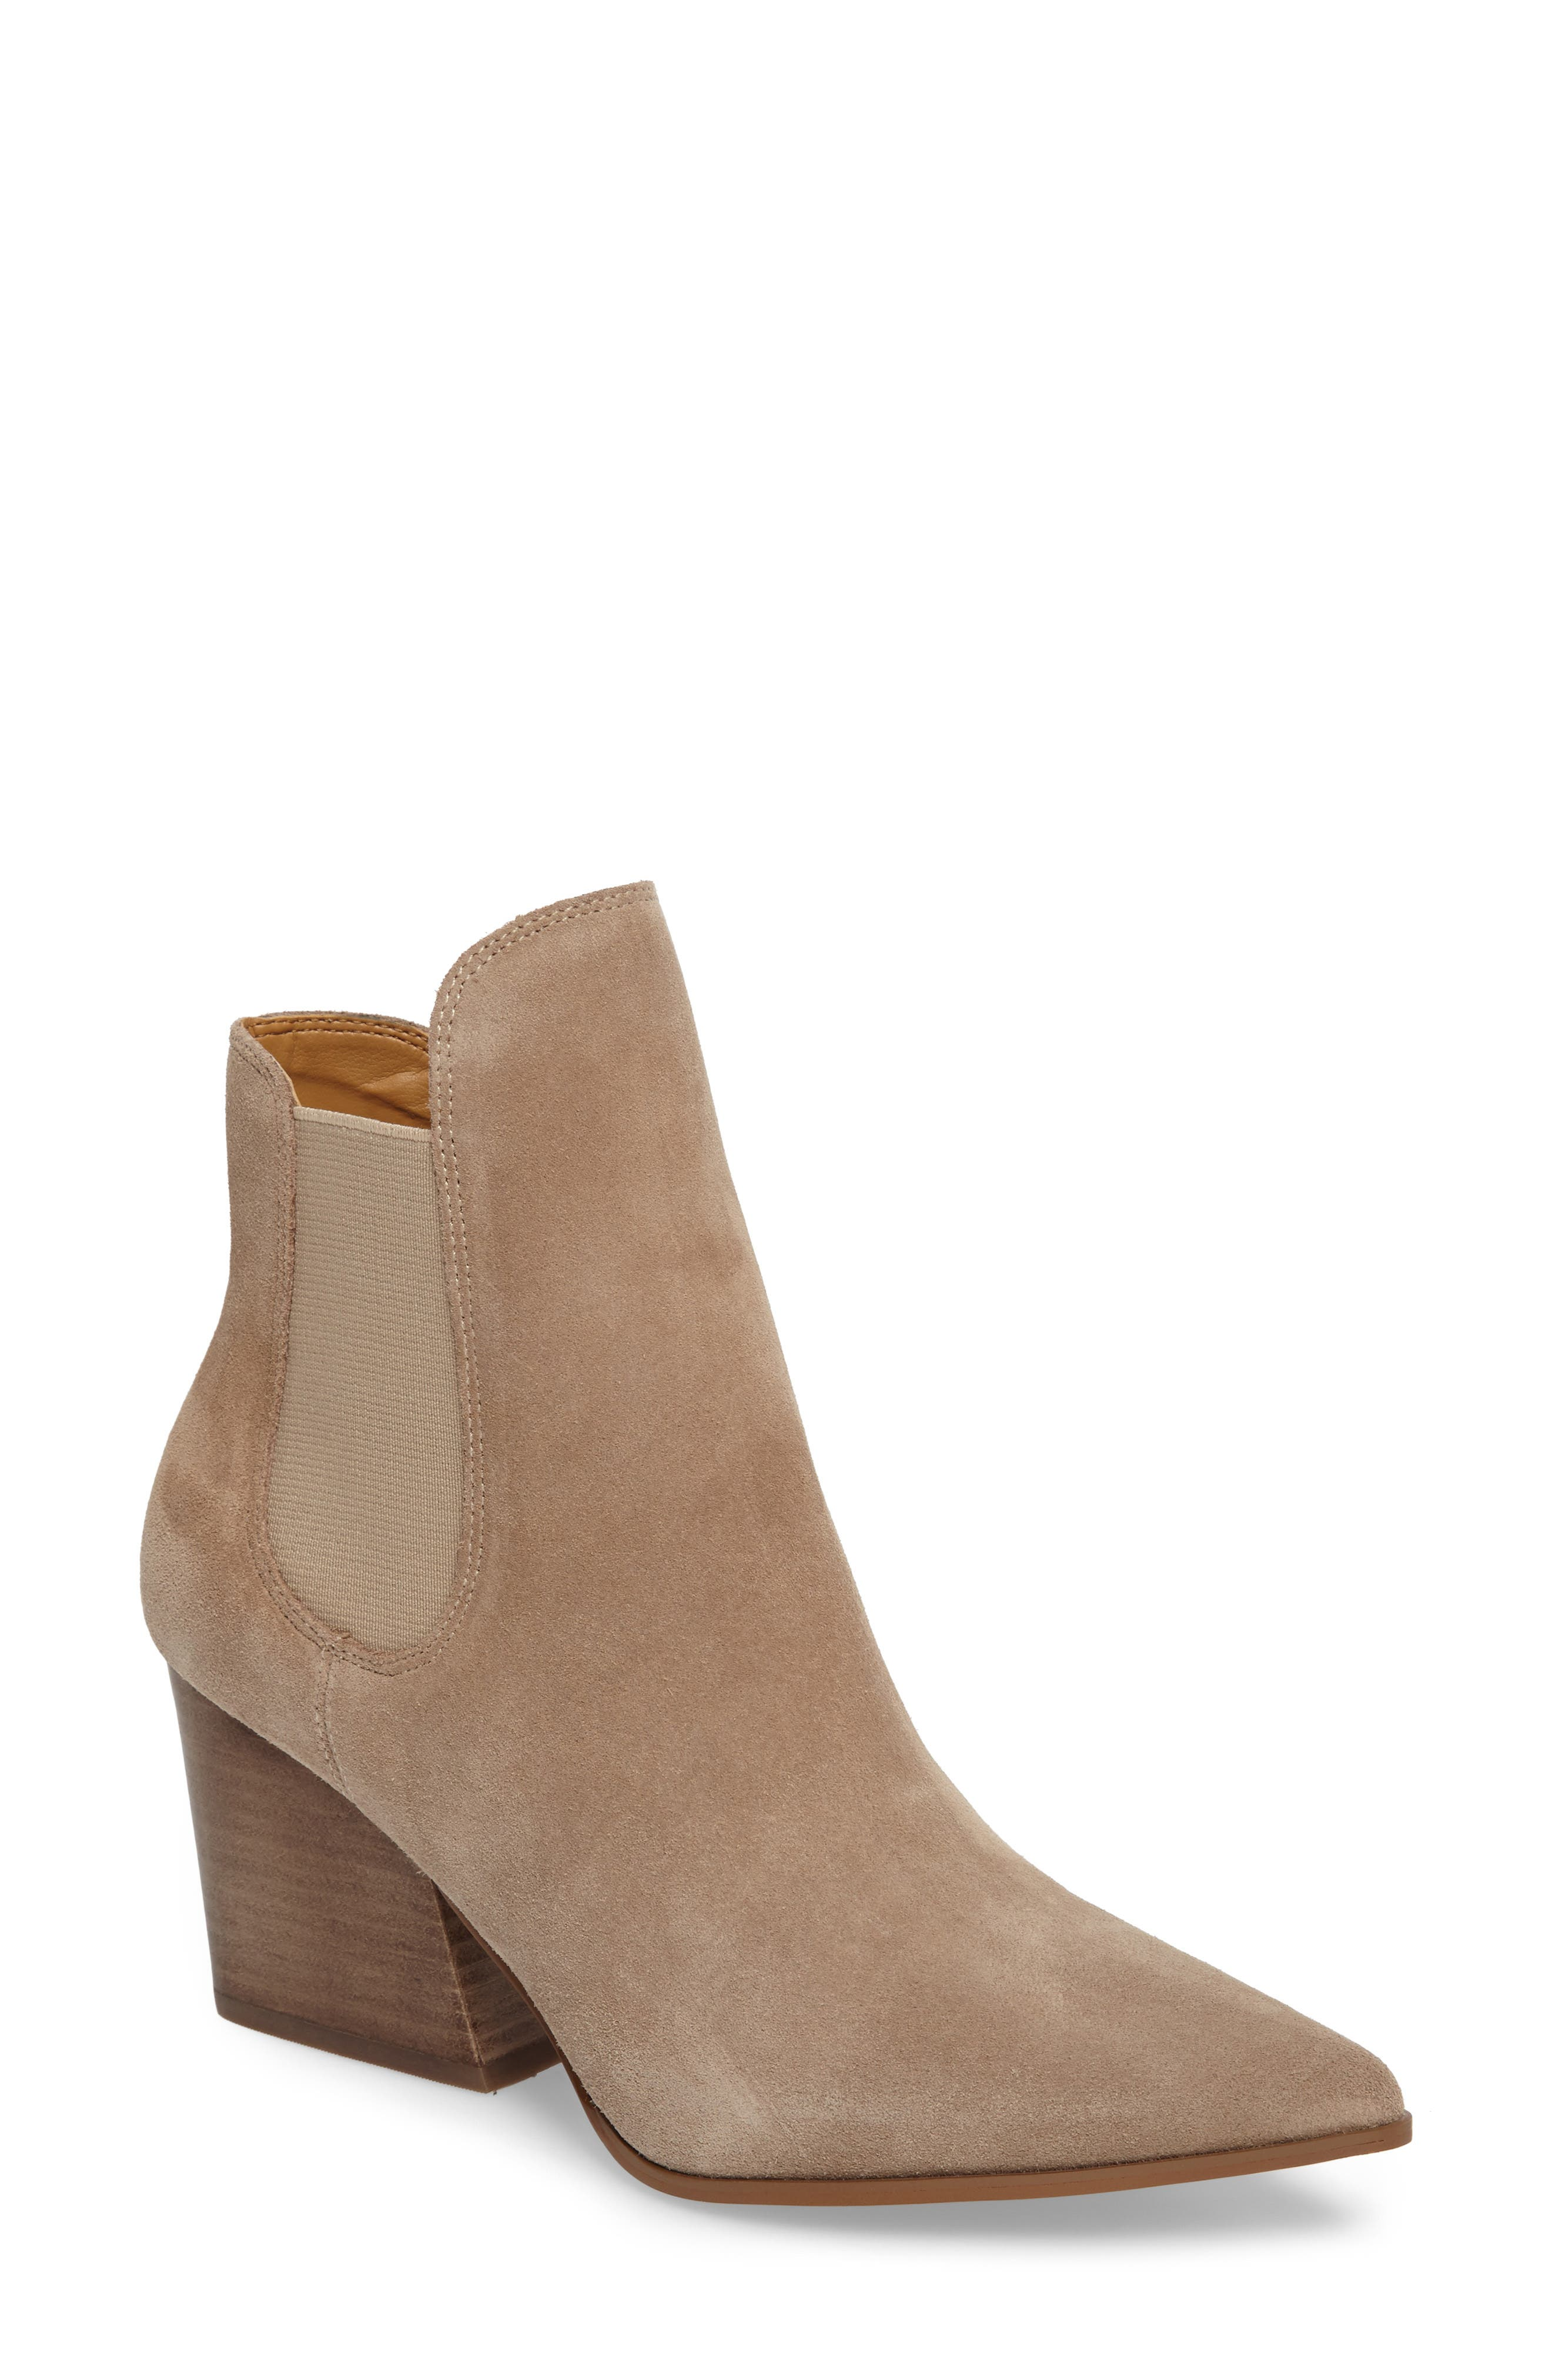 'Finley' Chelsea Boot, Main, color, 271